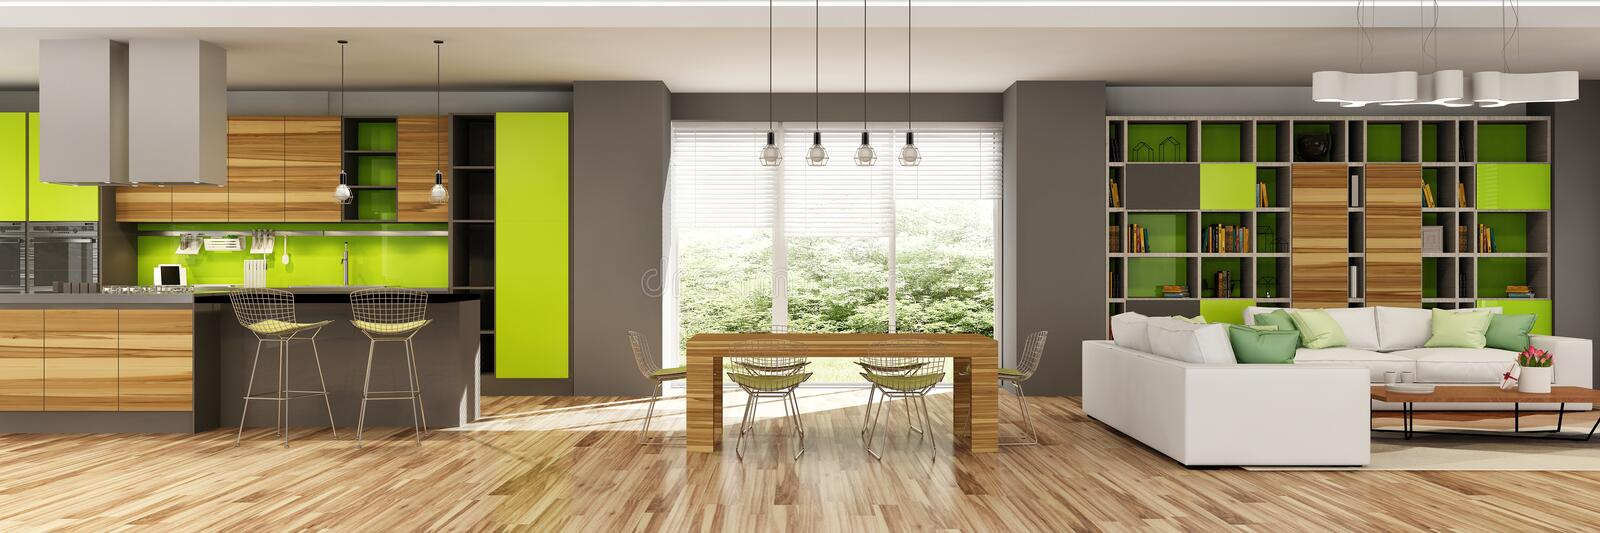 Modern house interior of living room and a kitchen in beige and green colors. Modern house interior of living room and a kitchen in beige and green colors in royalty free stock photos